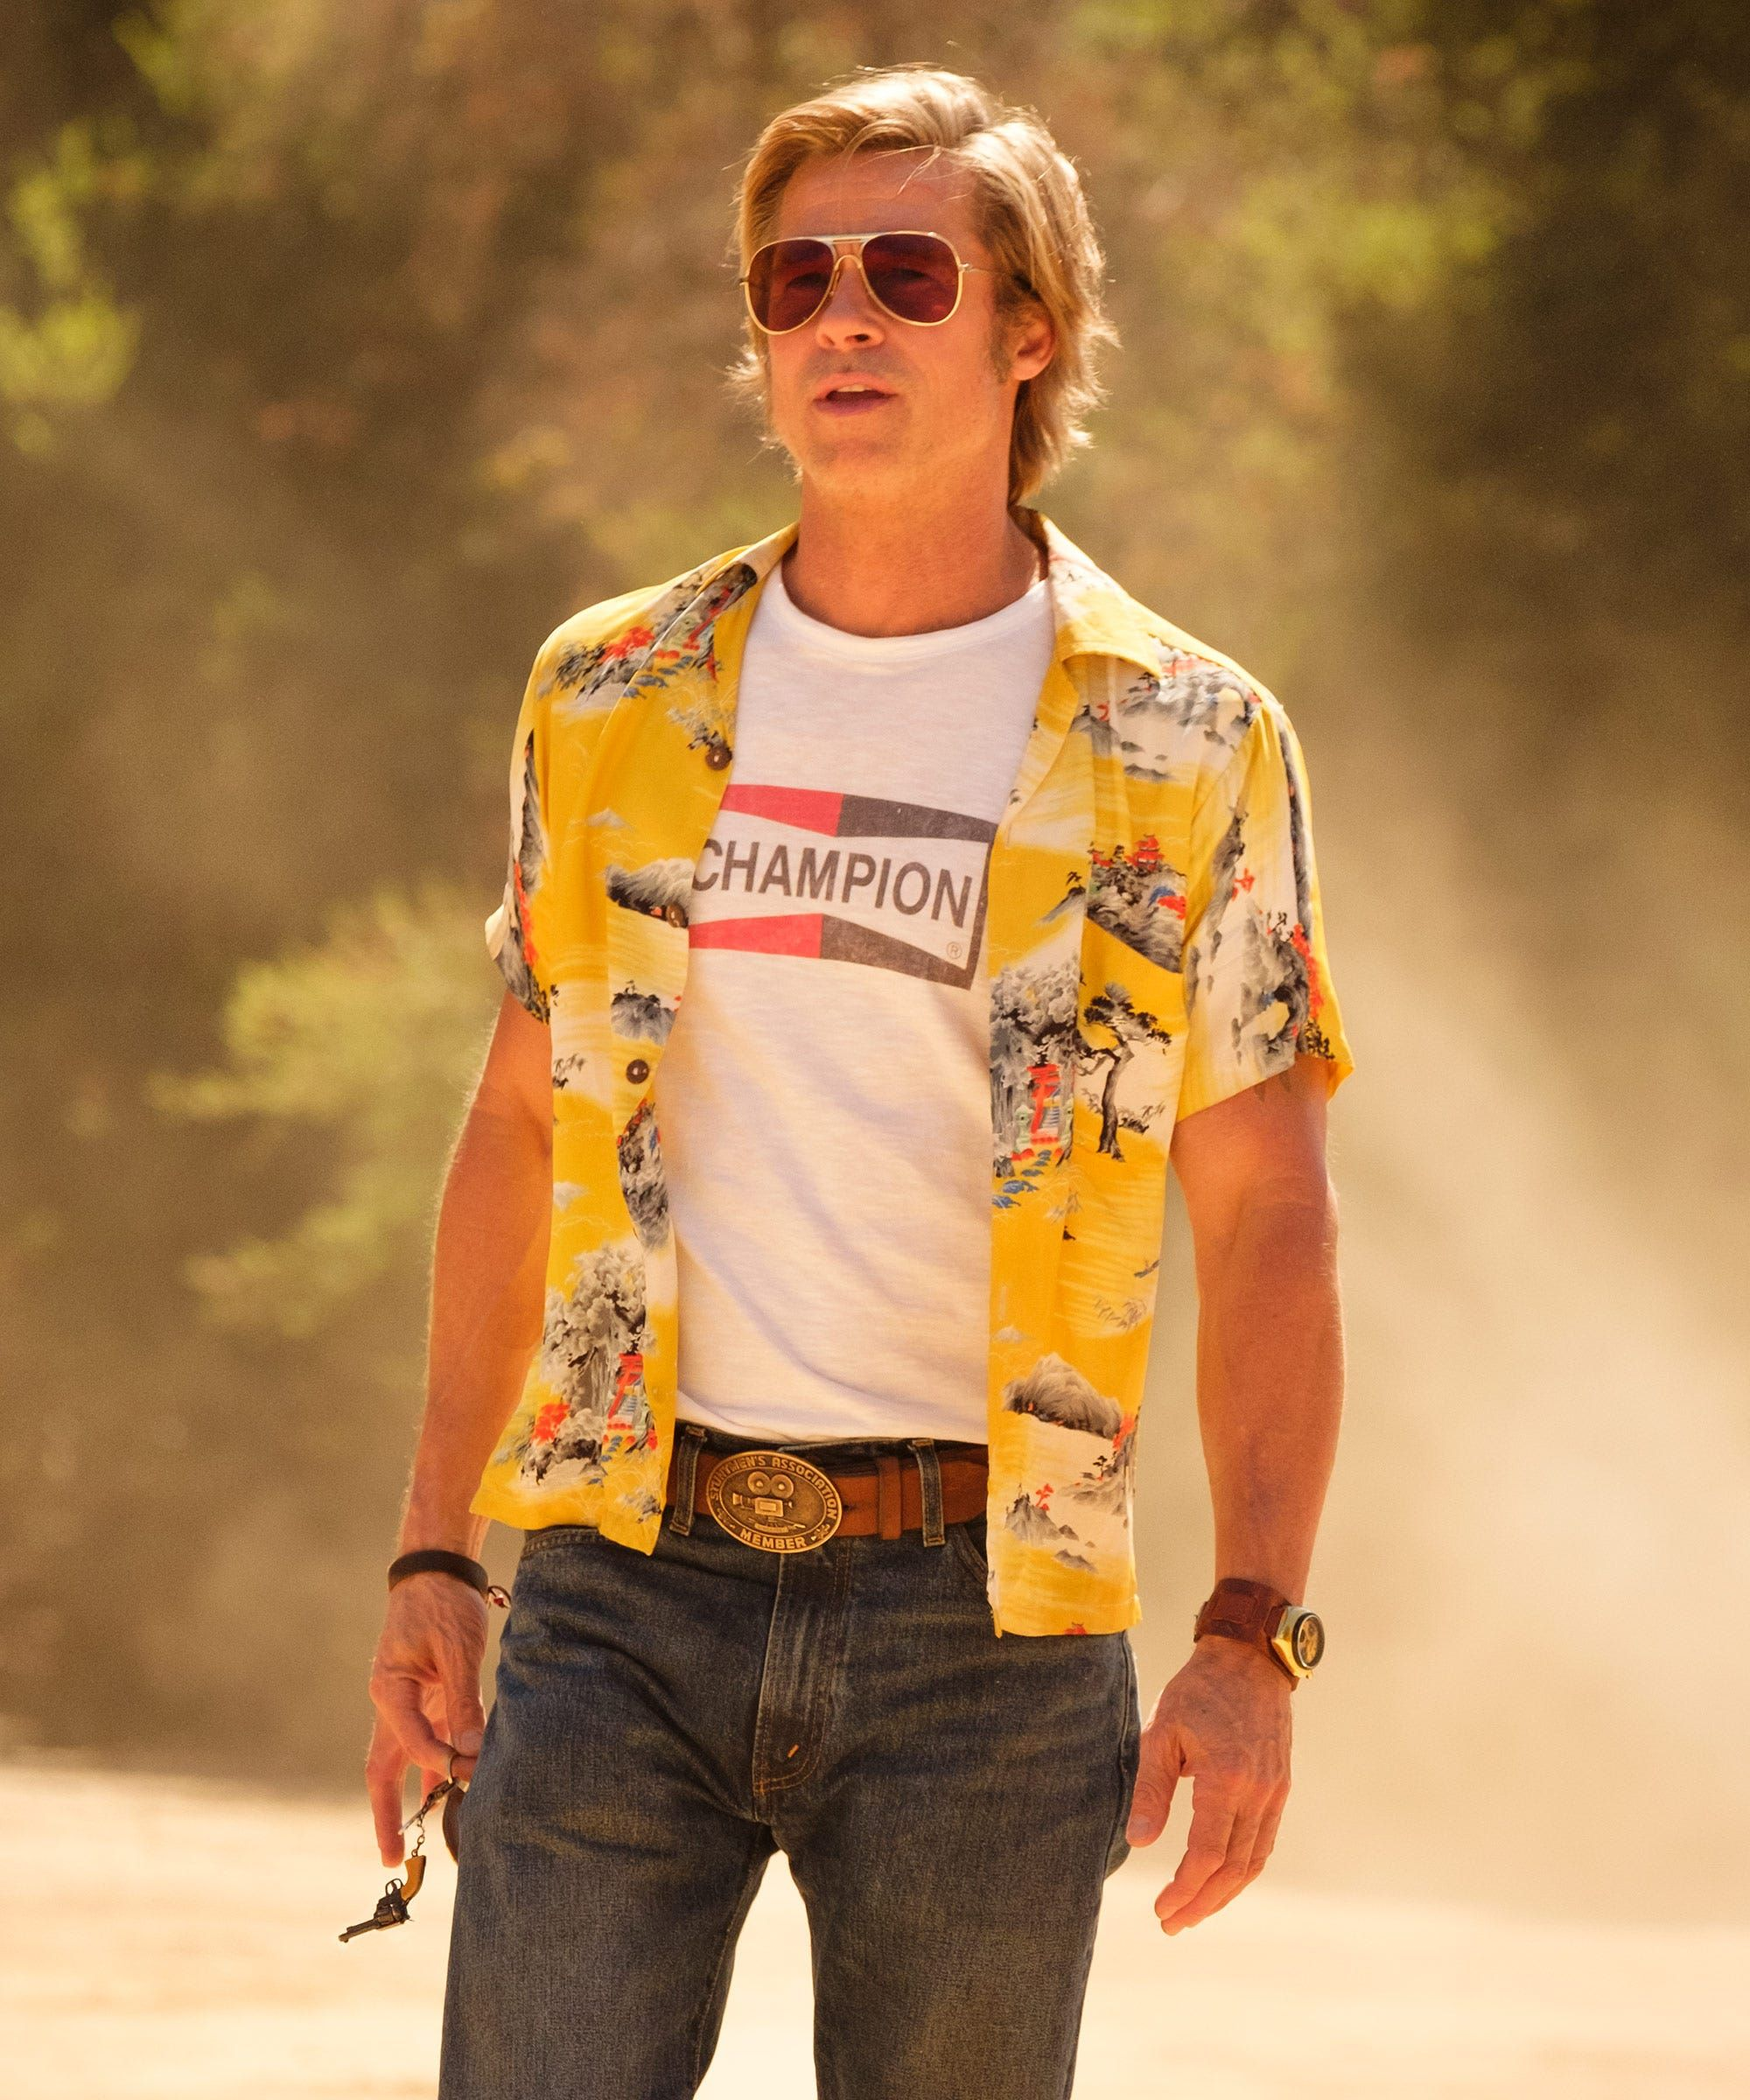 The Fact Fiction Of Once Upon A Time In 8230 Hollywood S Cliff Booth Refinery29 In 2020 Brad Pitt Brad Pitt News Champion Shirt